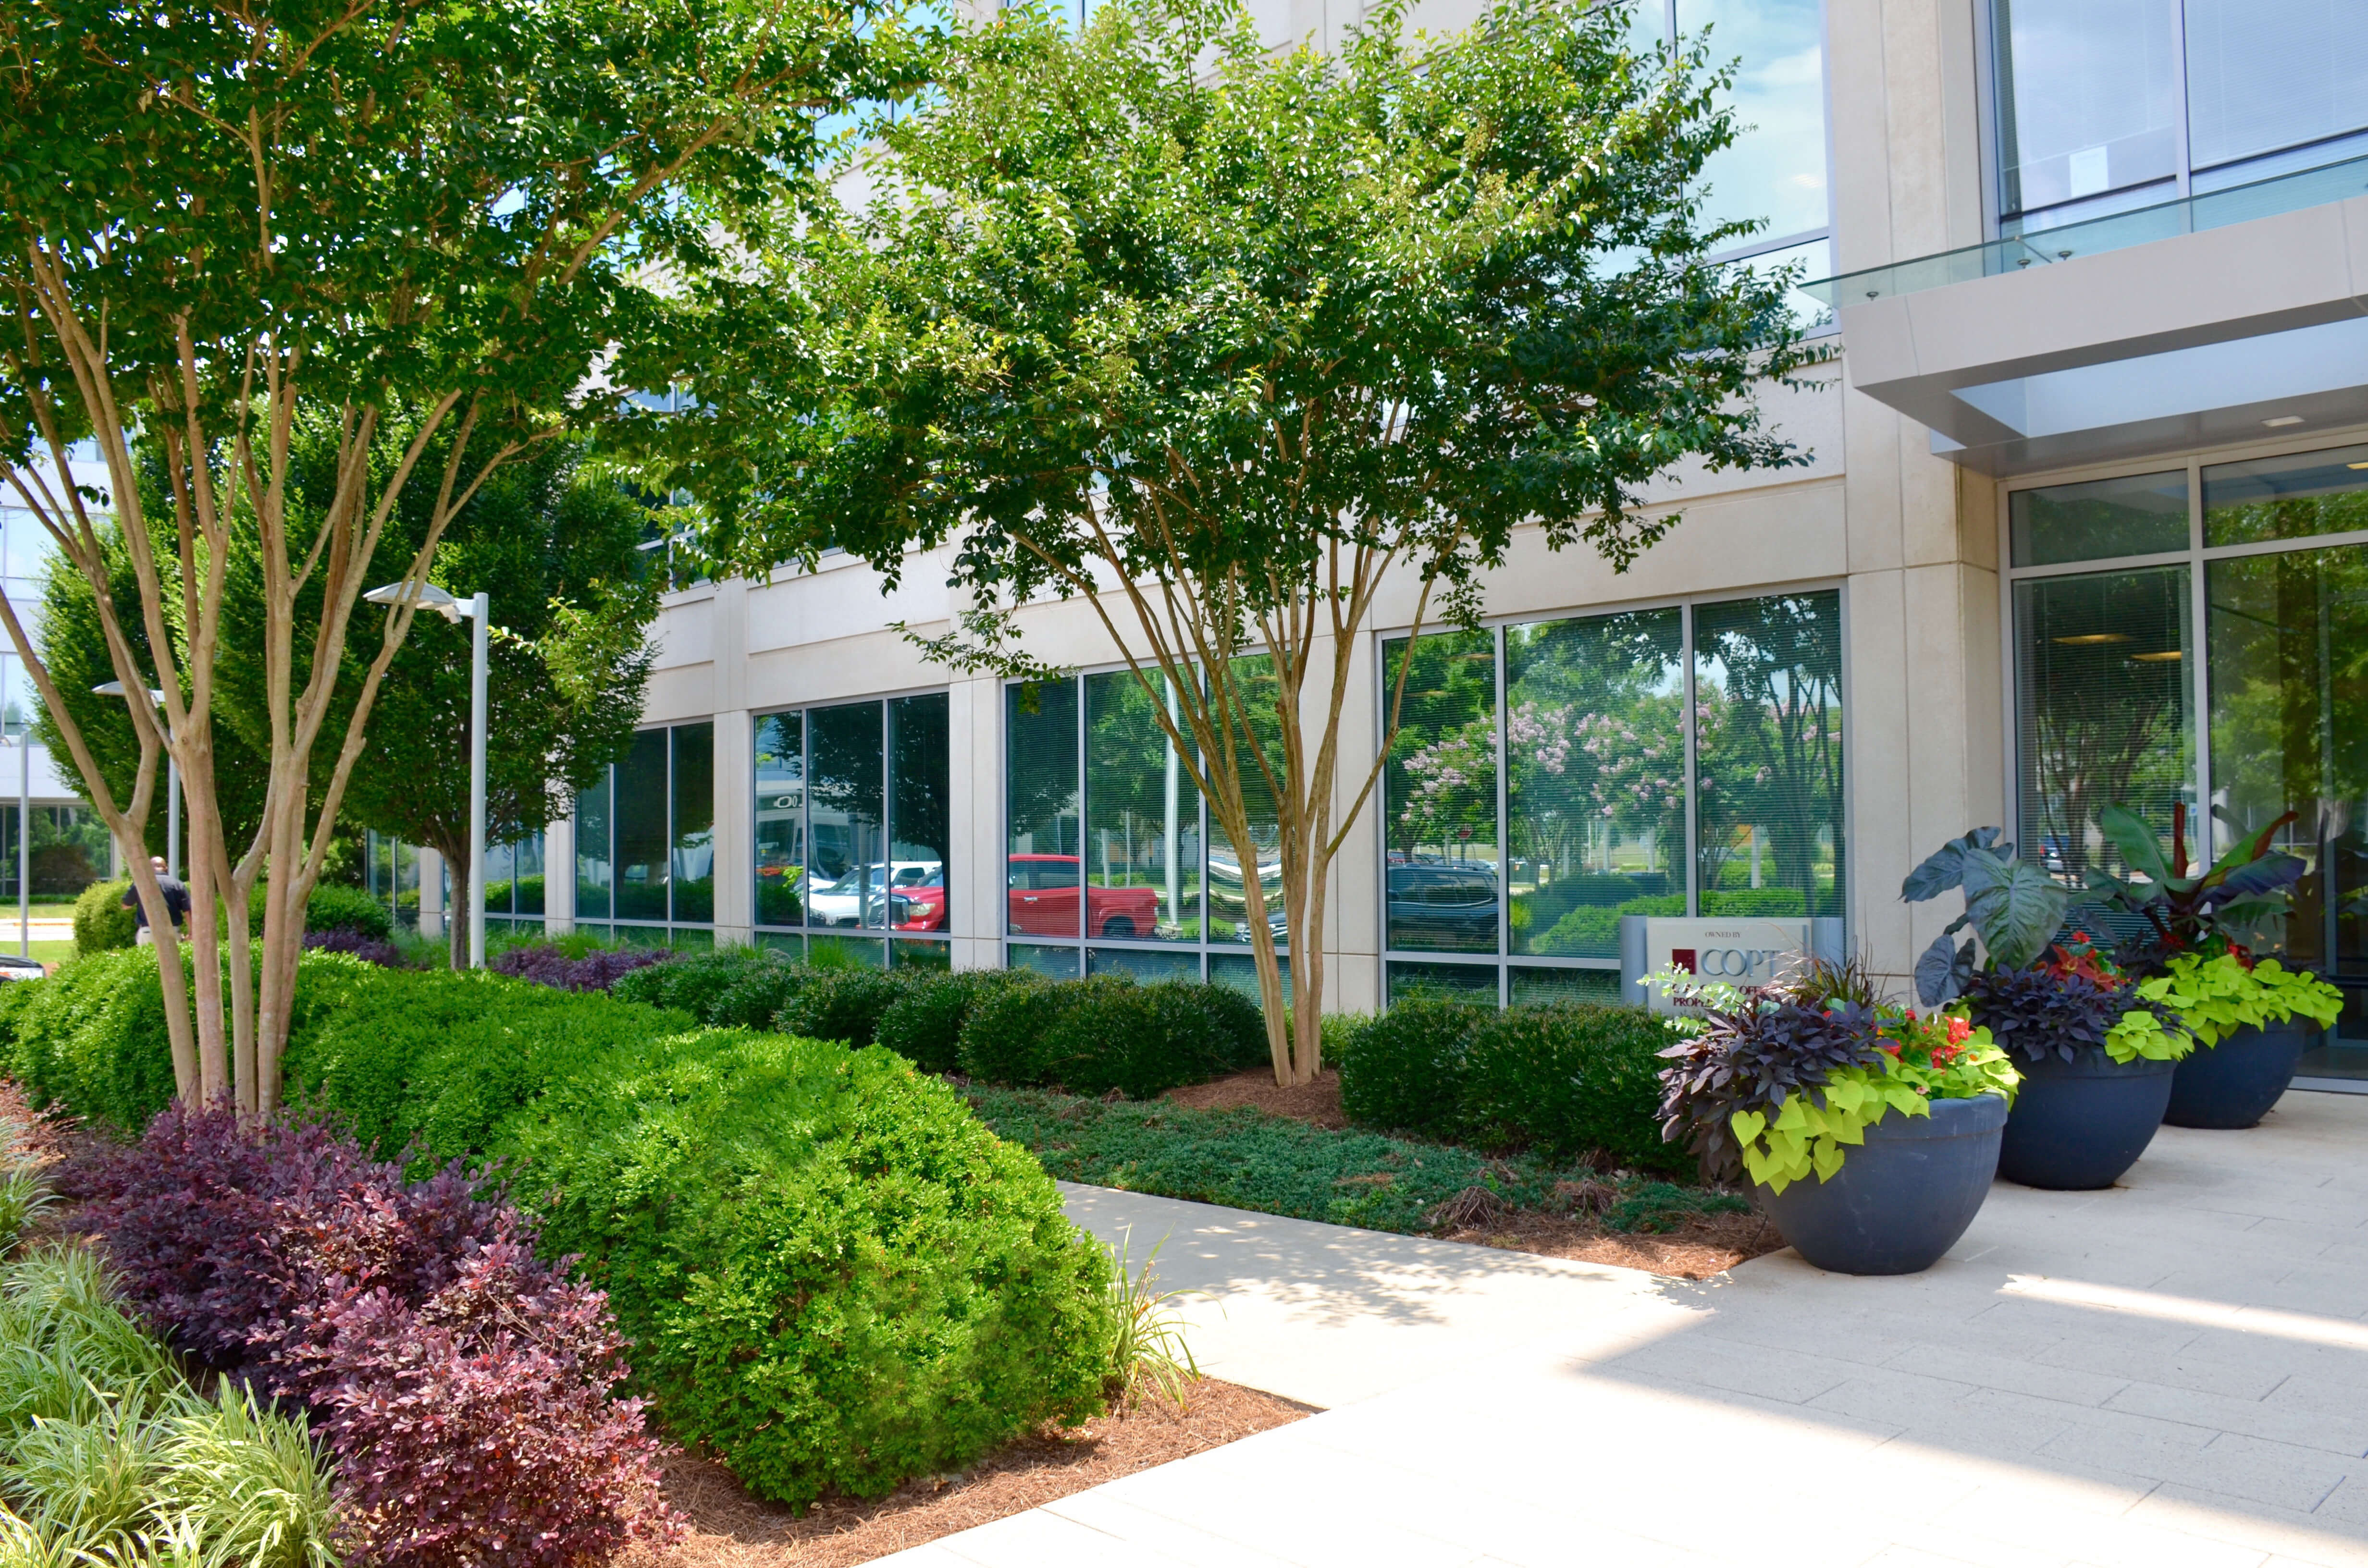 4 Ways Landscaping Can Affect Your Business—For Better or Worse